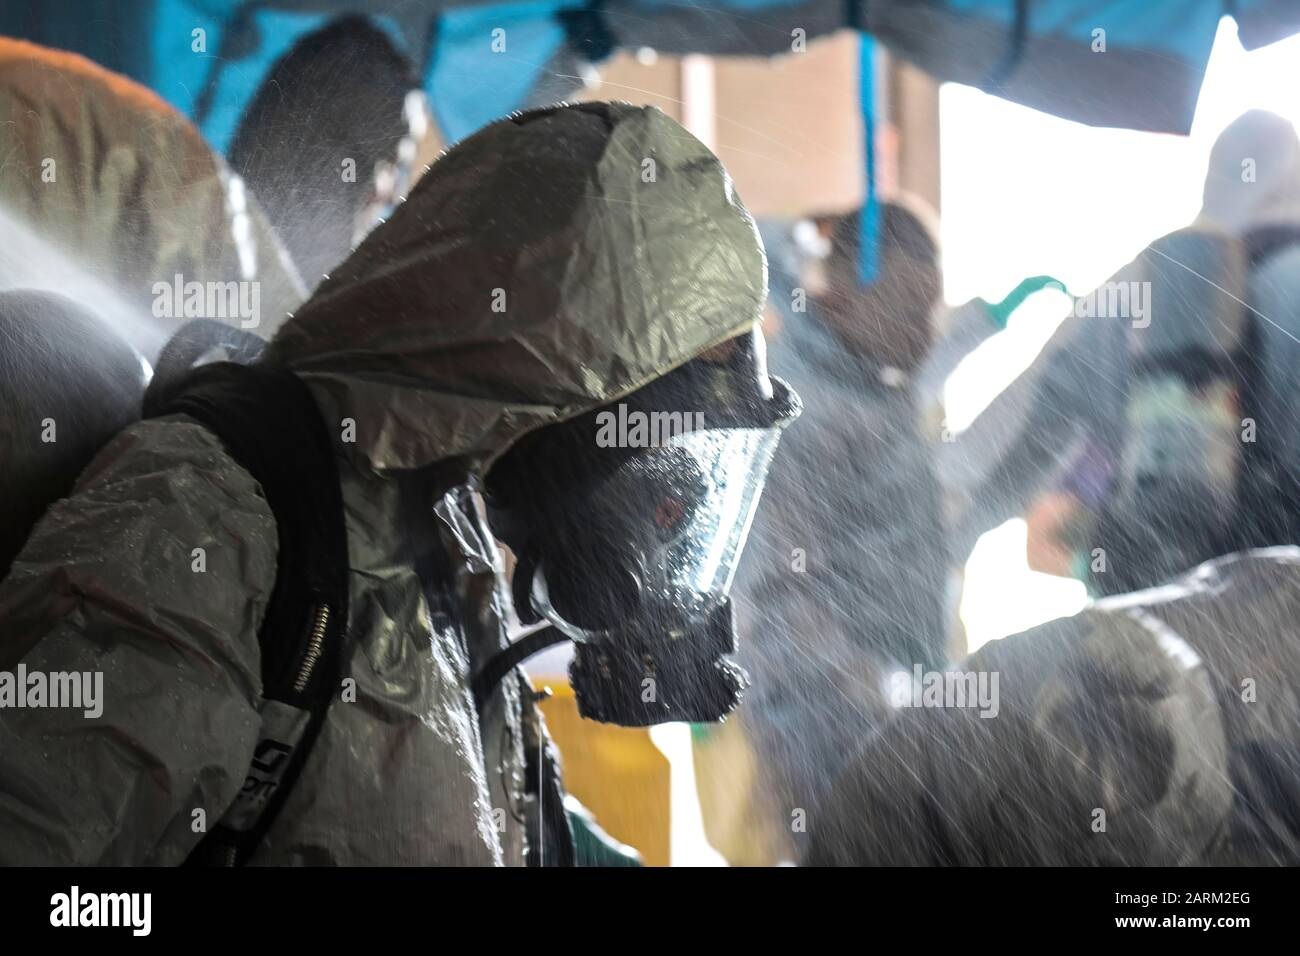 U.S. Marine Corps Lance Cpl. Kimberly Ortiz Marrero, a native of Lancaster, N.Y. and the hazardous material and safety representative for 3rd Transportation Support Battalion, stands while being decontaminated during the Hazardous Waste Operations and Emergency Response course at Camp Foster, Okinawa, Japan, Sept. 19, 2019. After completing an exercise, all the students who wore hazardous material suits had to undergo a mock-decontamination procedure where they entered a tent and were sprayed with water. (U.S. Marine Corps photo by Lance Cpl. Ryan H. Pulliam) Stock Photo